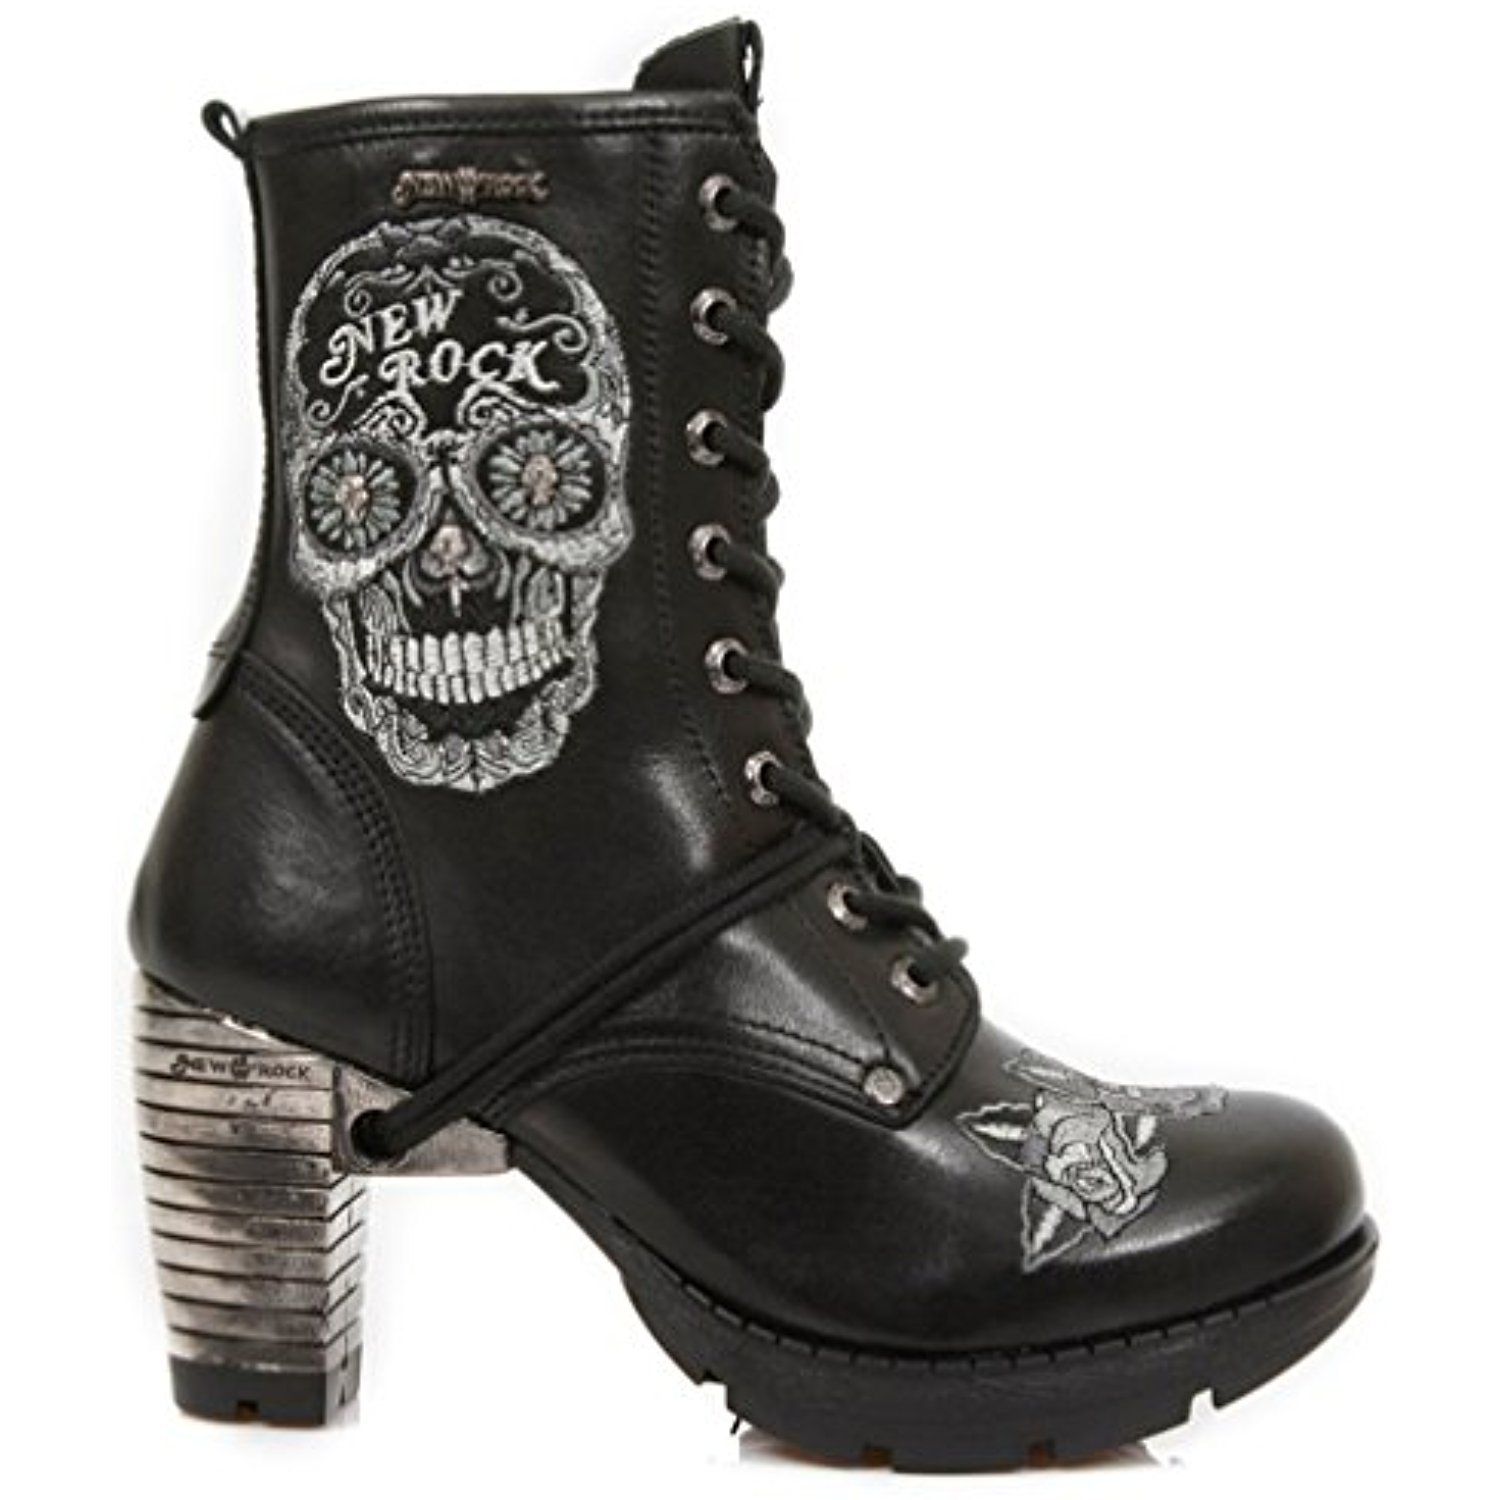 New Rock M.TR048 S1 Ladies White Sugar Skull Embroidery Leather Trail Boots